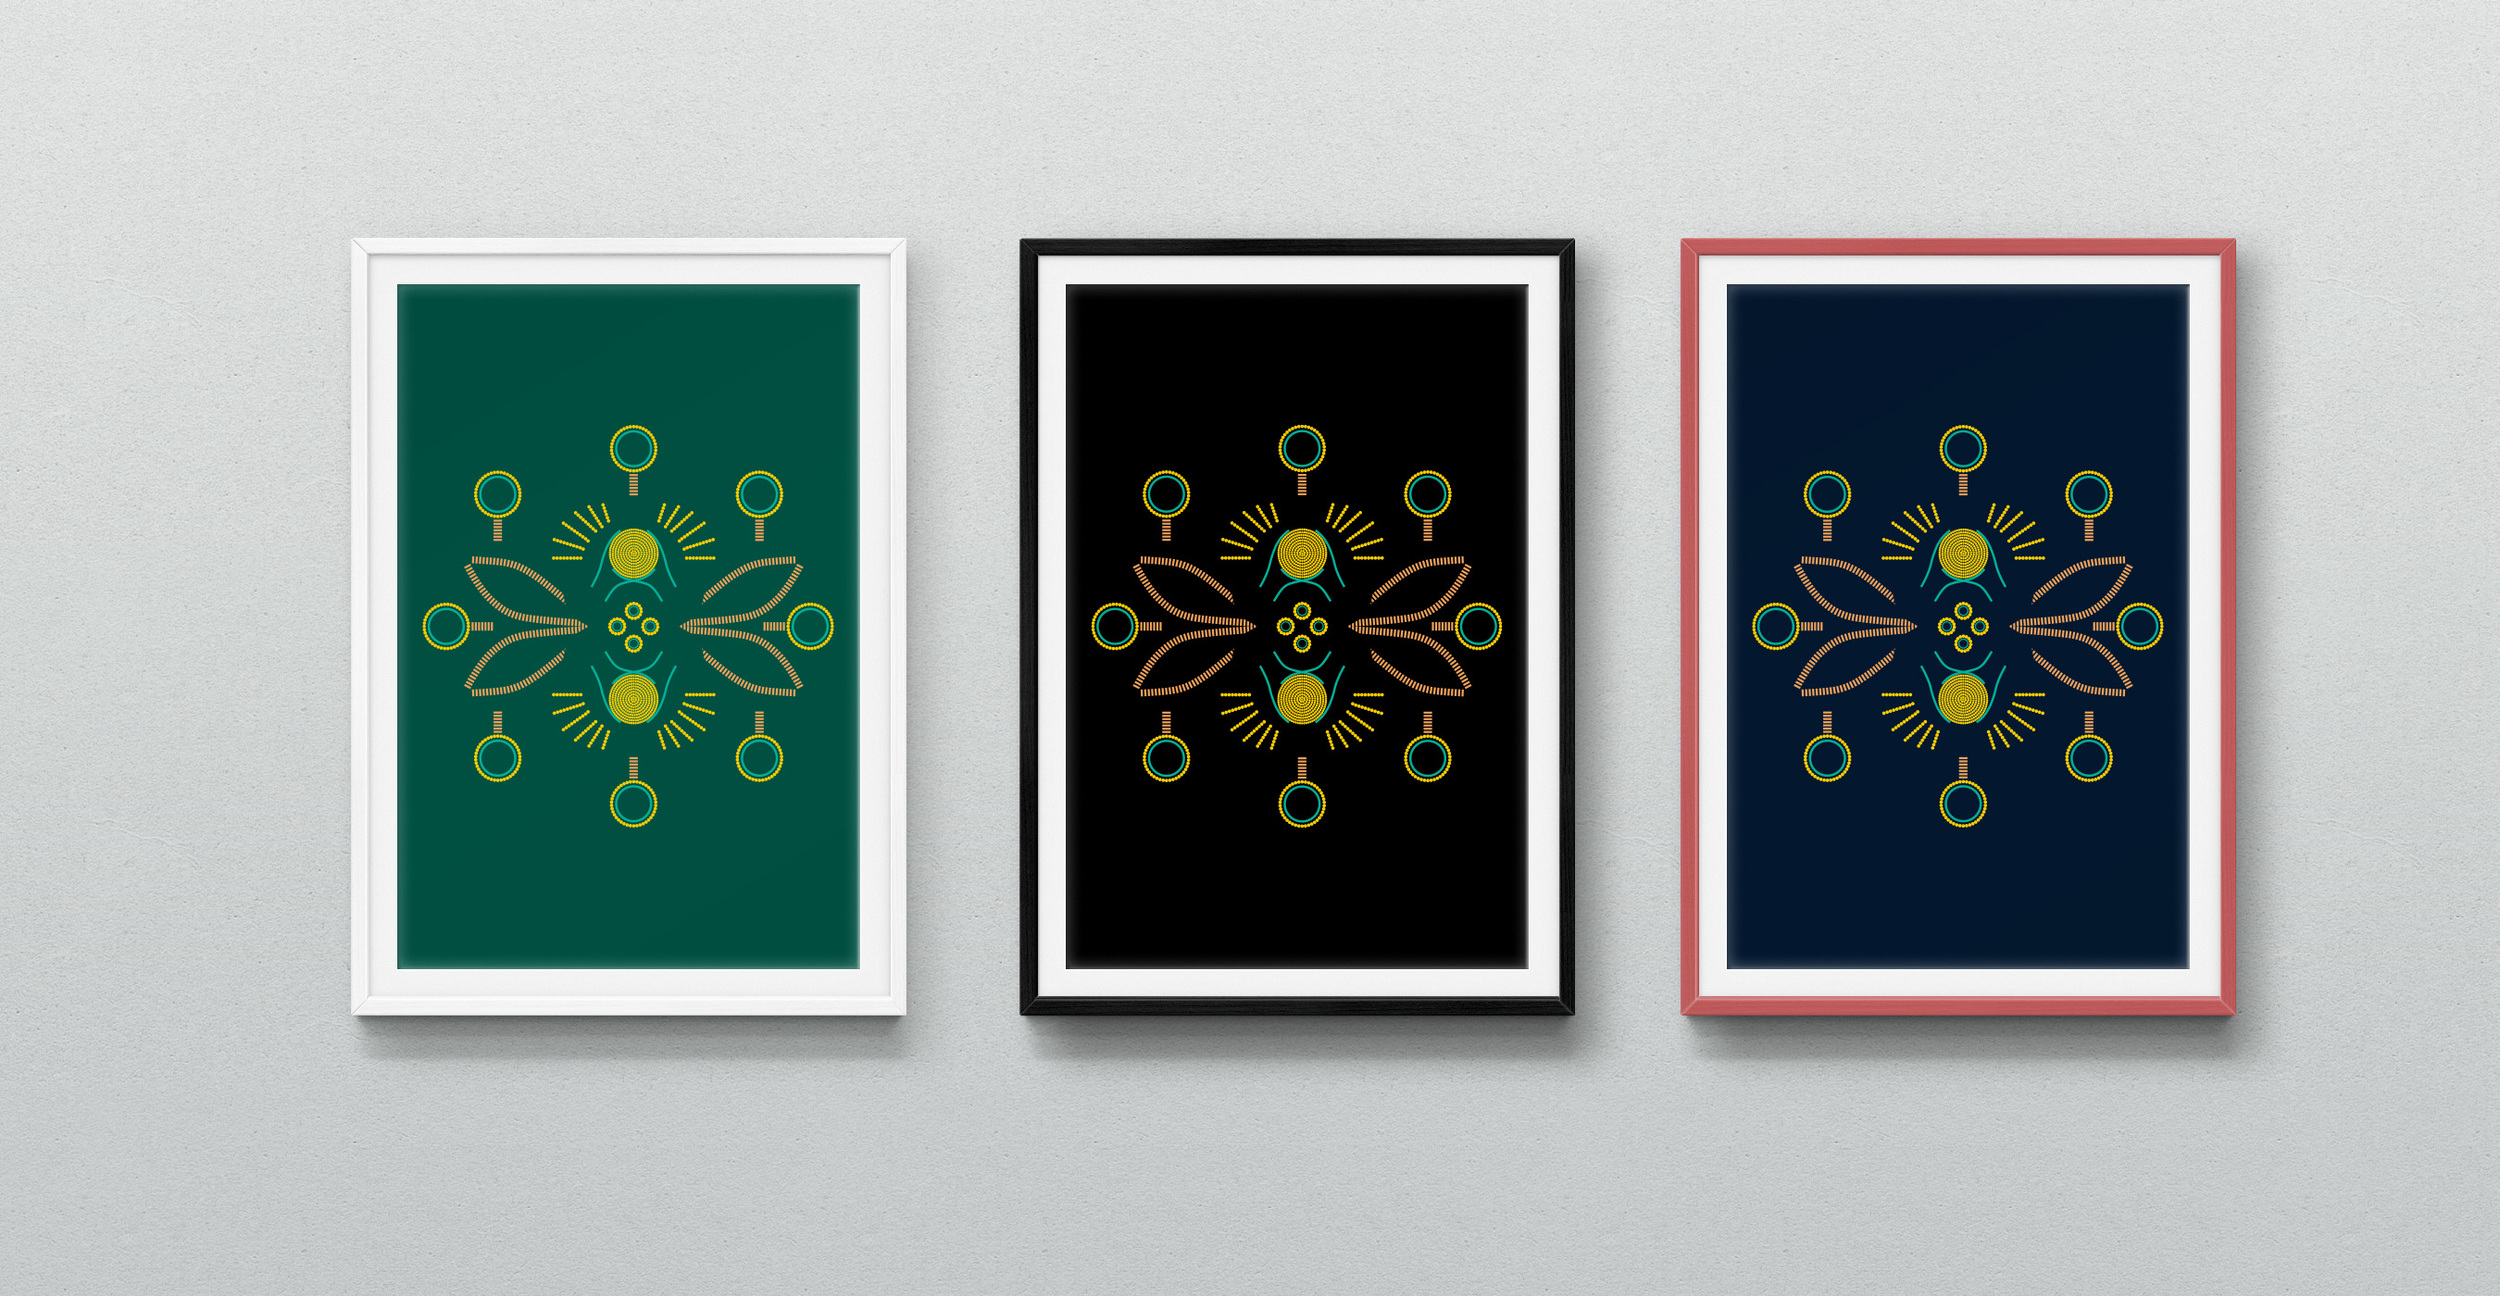 Golden Bees posters